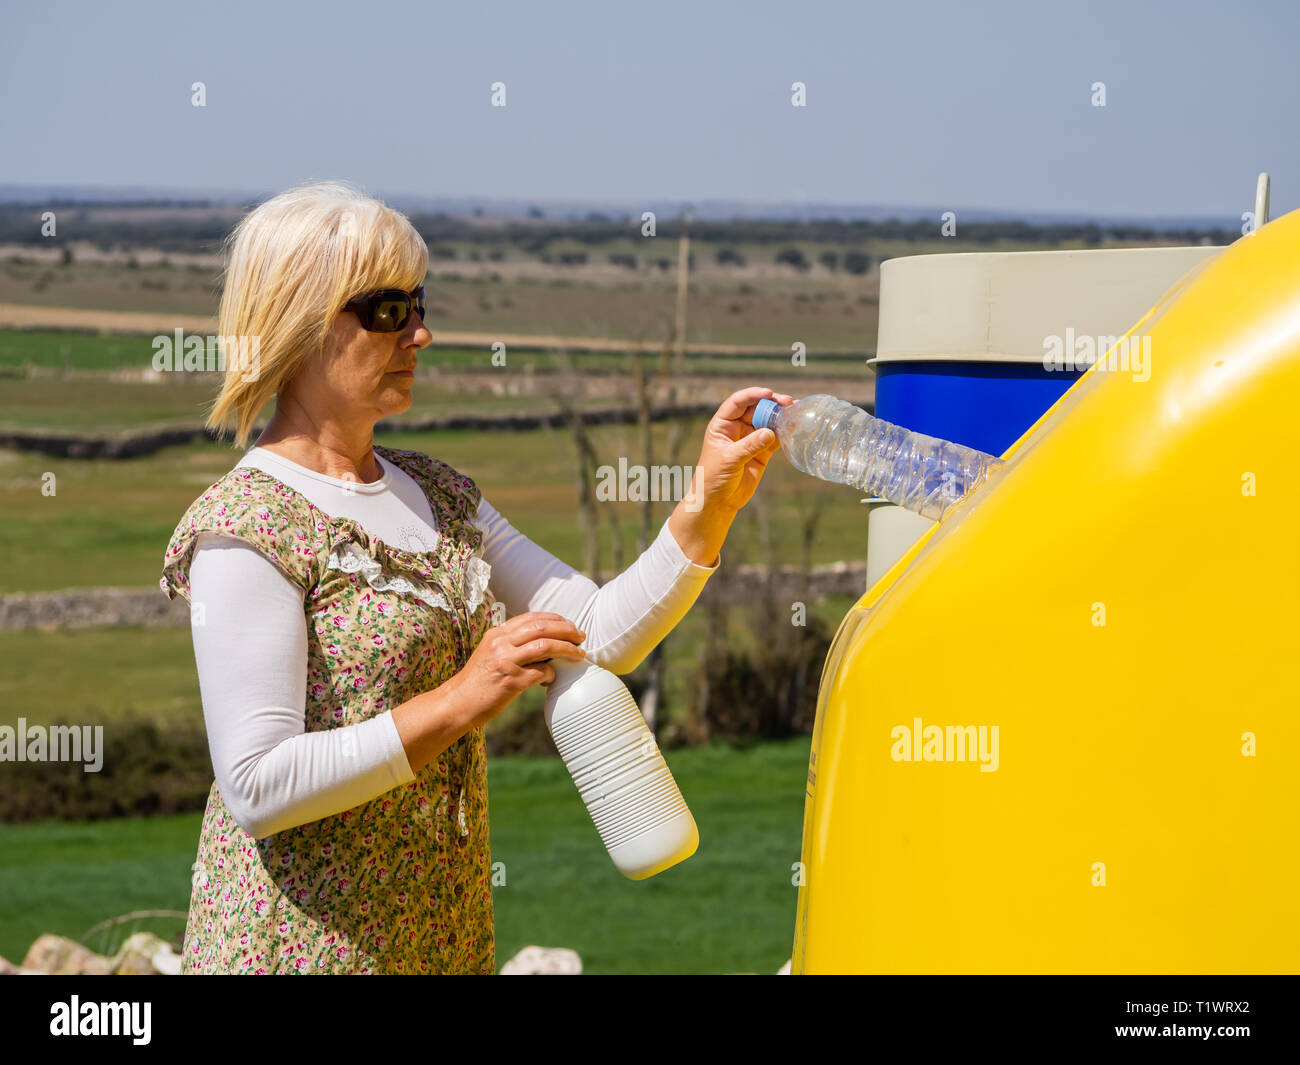 A mature woman pulling a plastic bottle in a yellow bin for recycling plastic - Stock Image